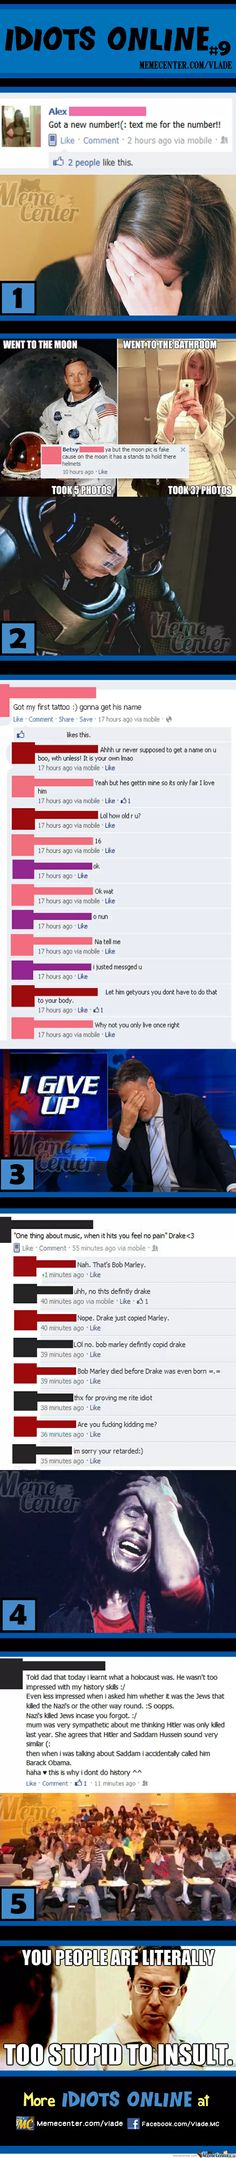 Idiots Online #9 I don't want to live on this planet anymore.